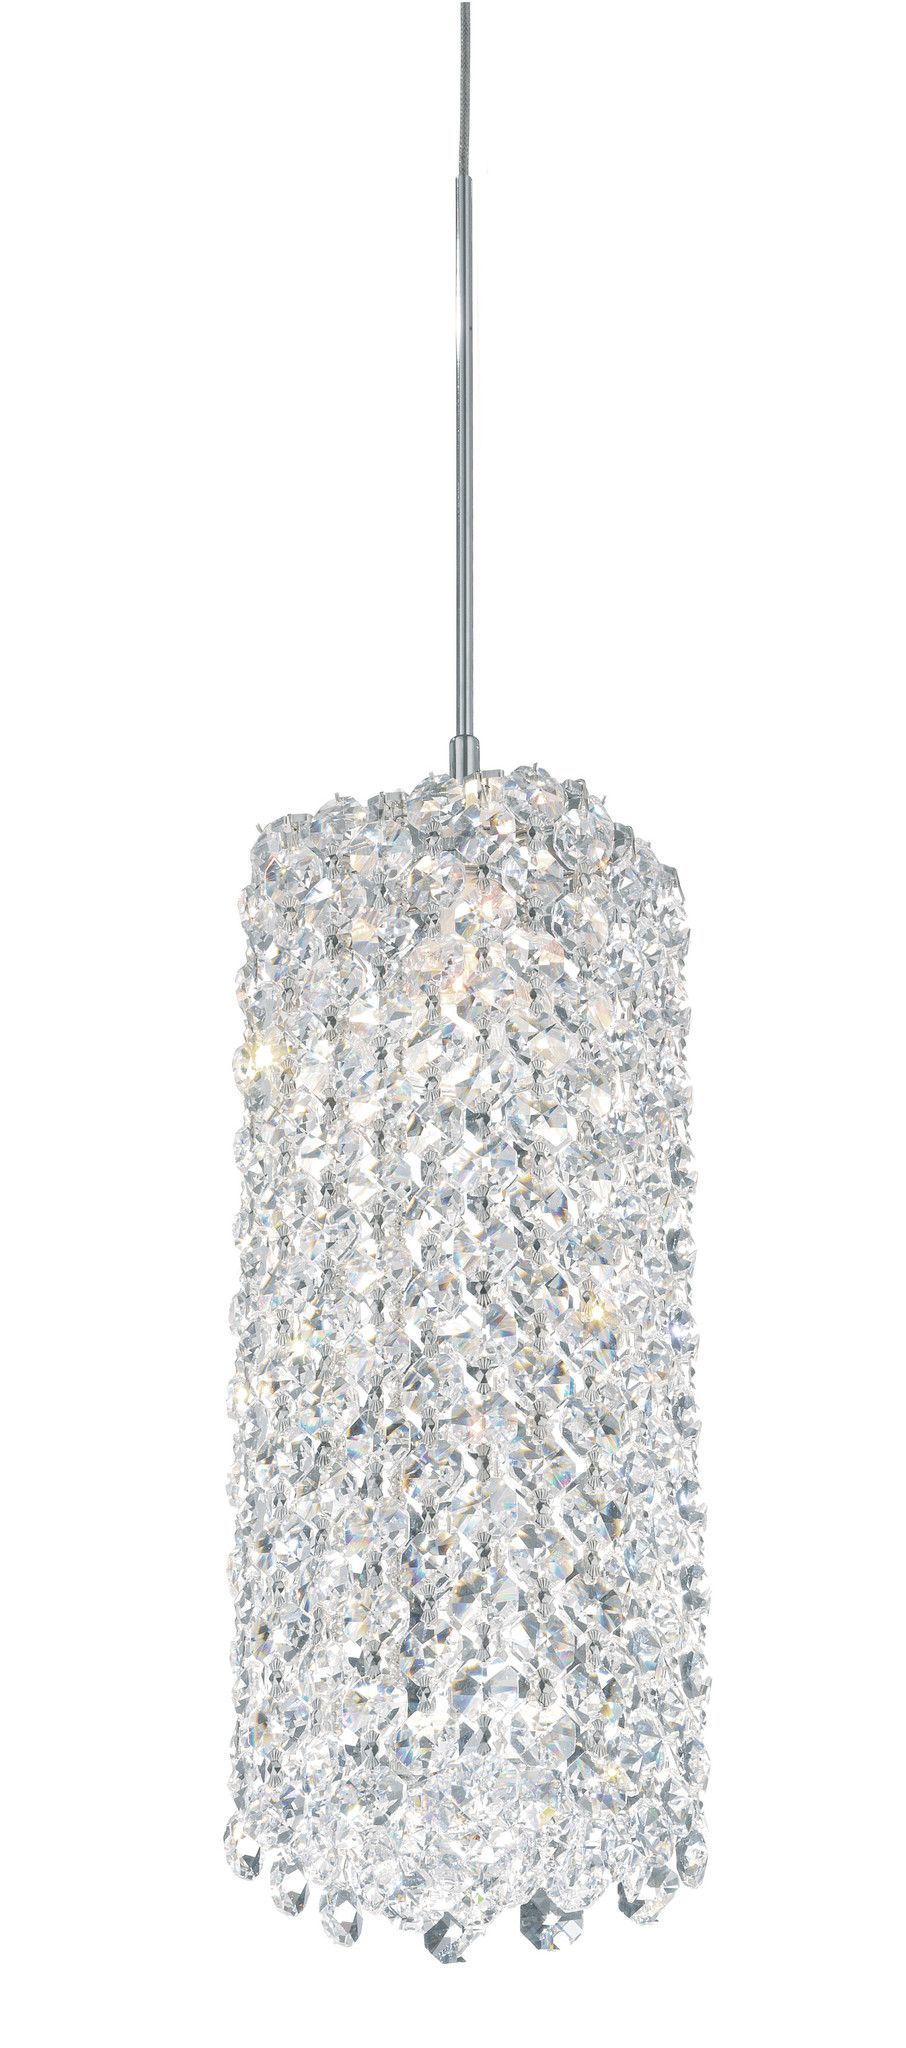 Geometrix By Schonbek Re0409 Refrax 4 Inch Mini Pendant